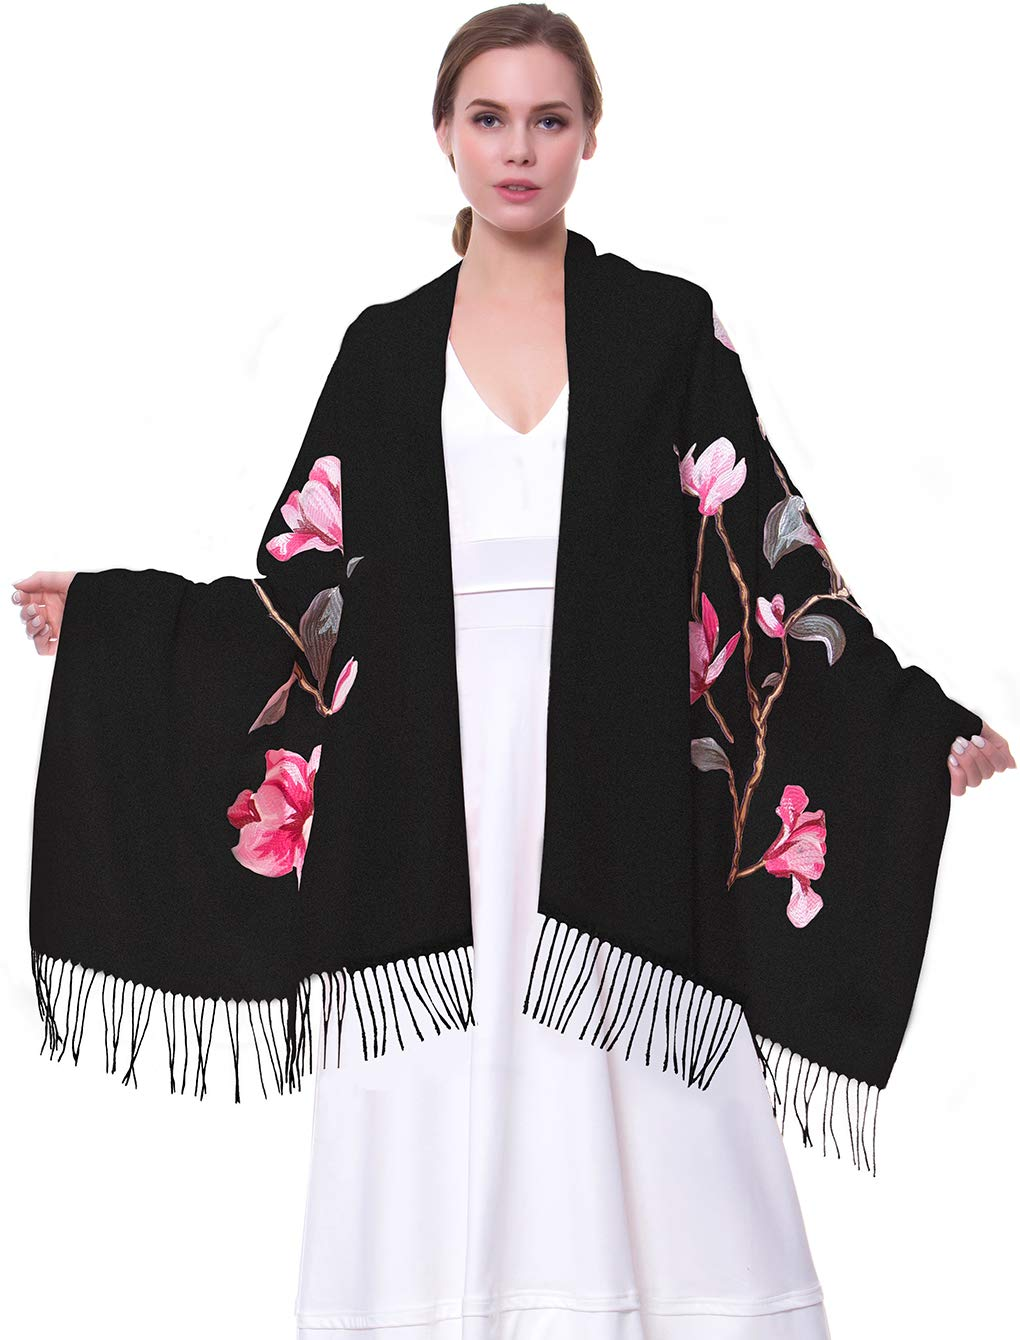 MORCOE Women's Exotic Design Wool Delicate Embroidered Soft Fringe Long Scarf Wrap Ladies Party Shawl Valentines Day Gift (Style 2:Black)